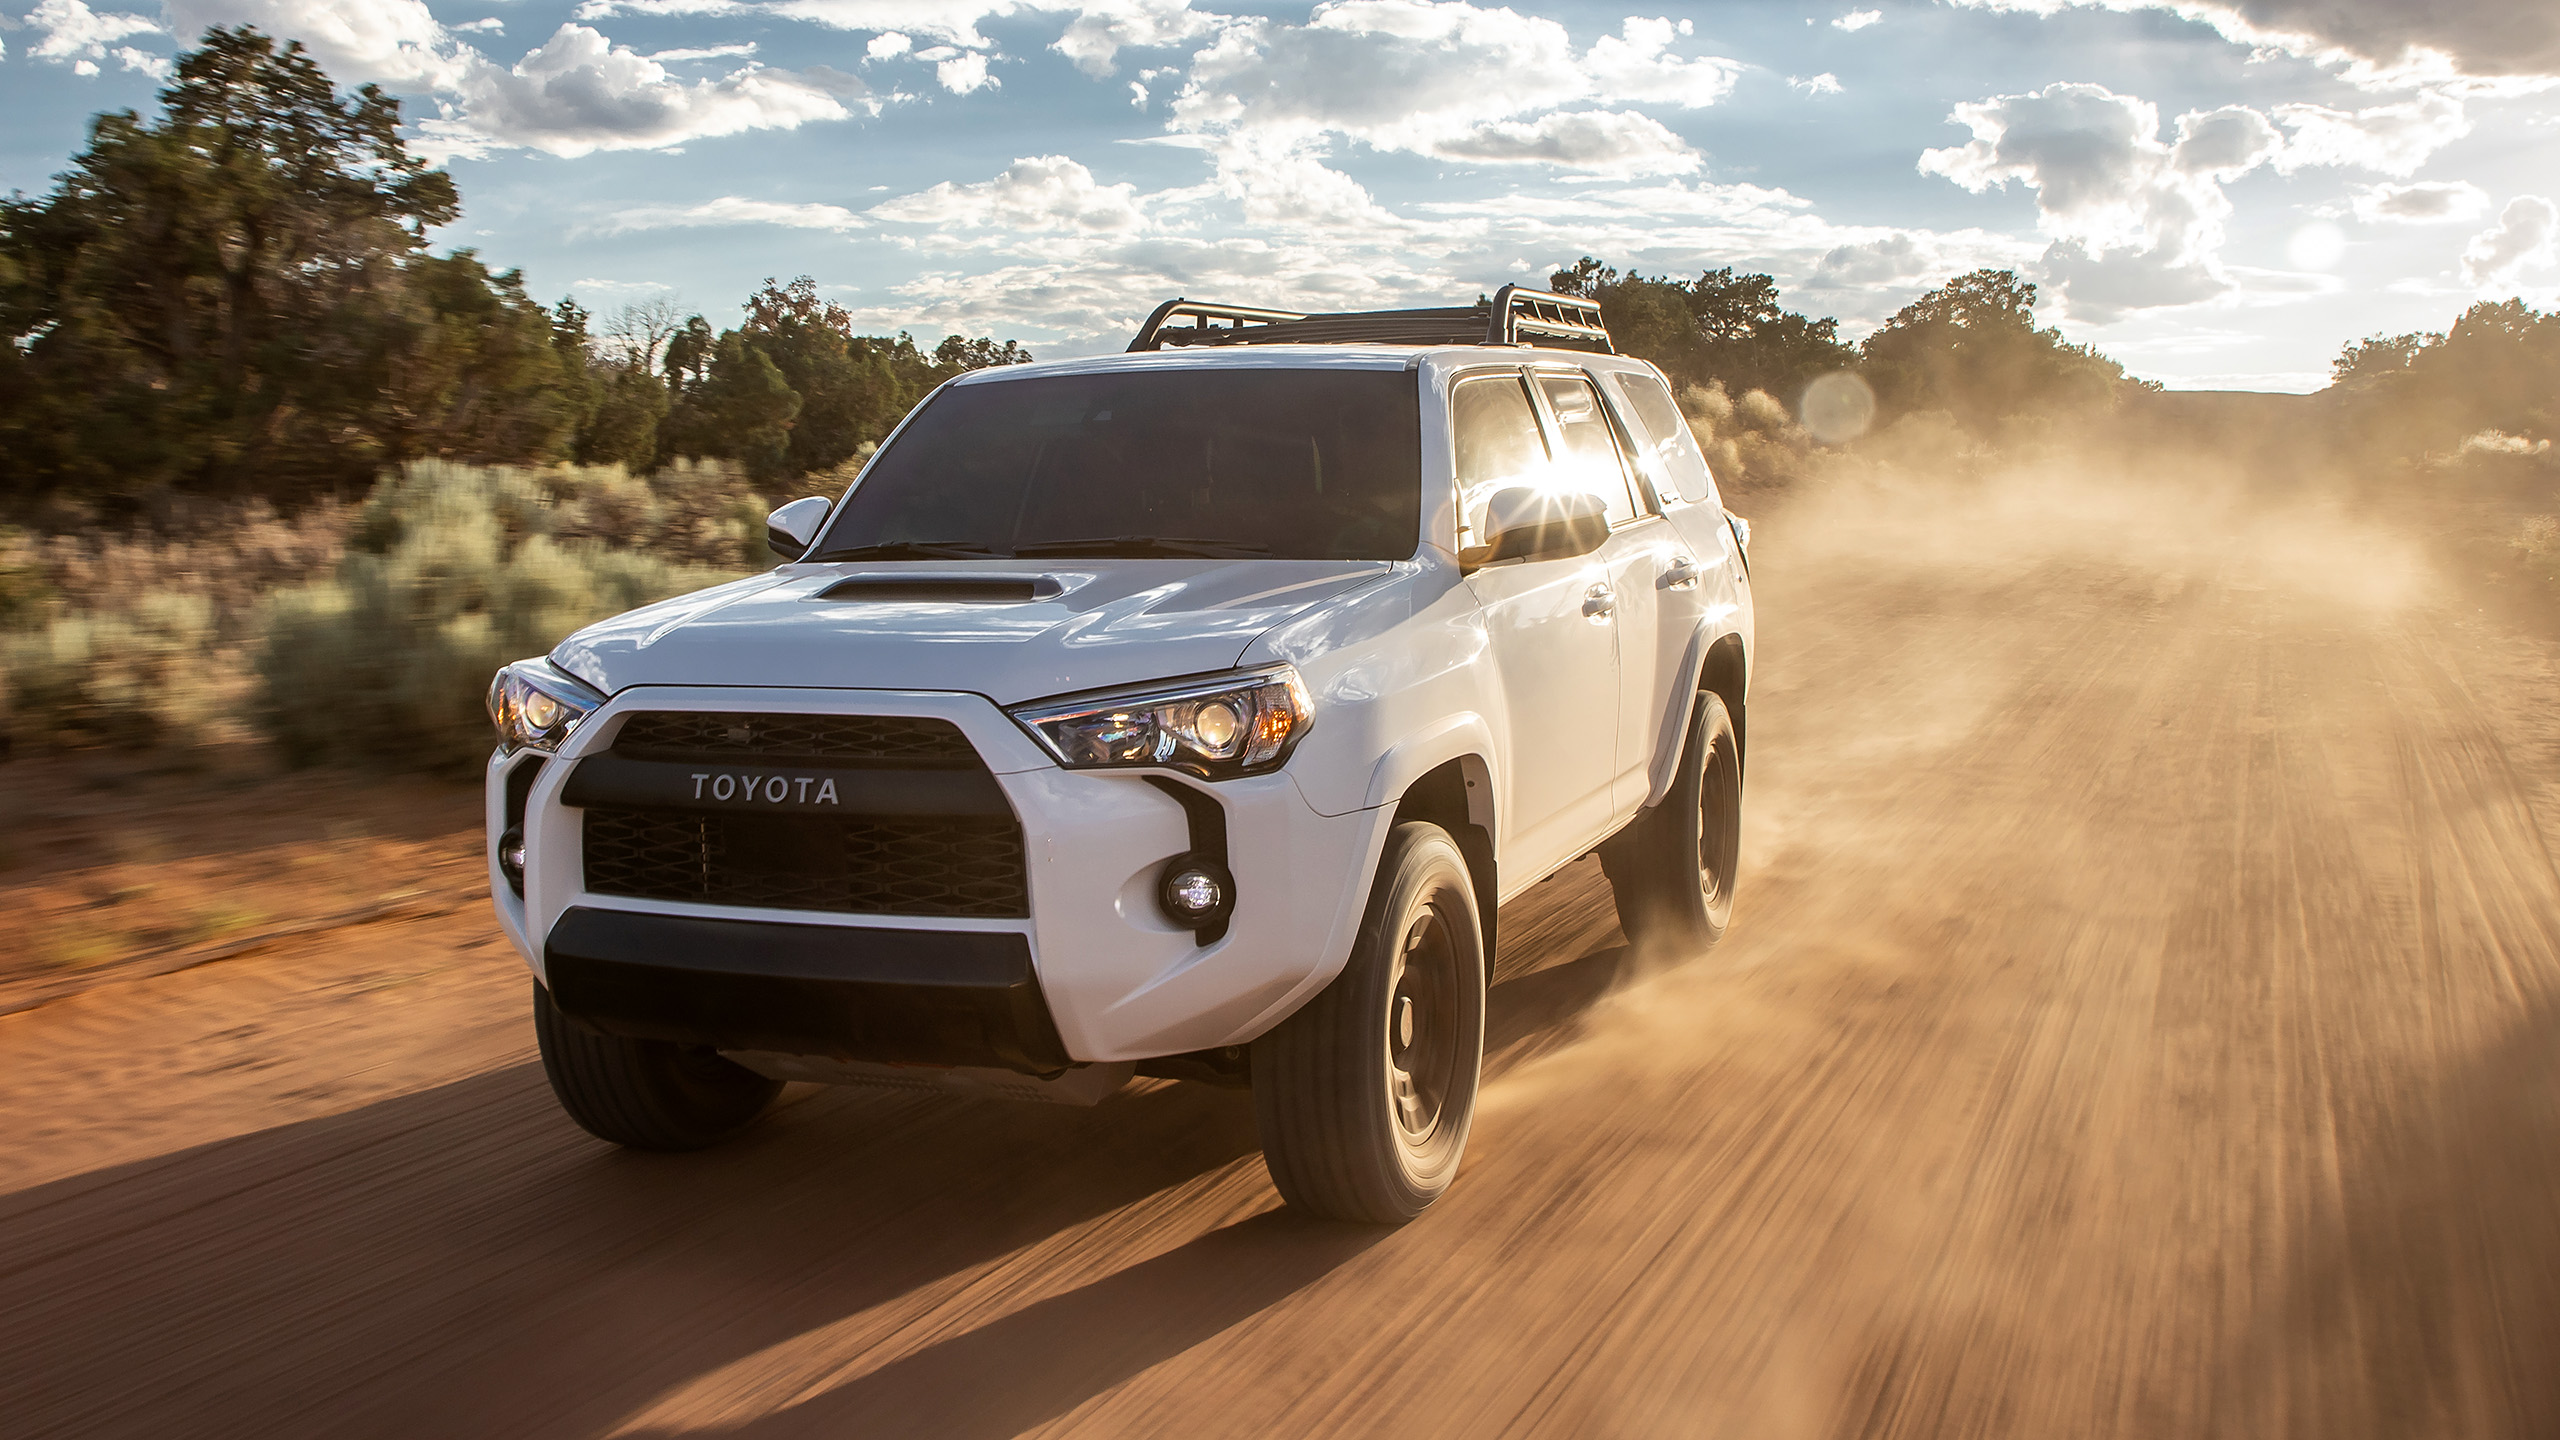 Toyota Four Runner For Sale >> 2020 4Runner First Drive | Photos, specs, impressions | Autoblog